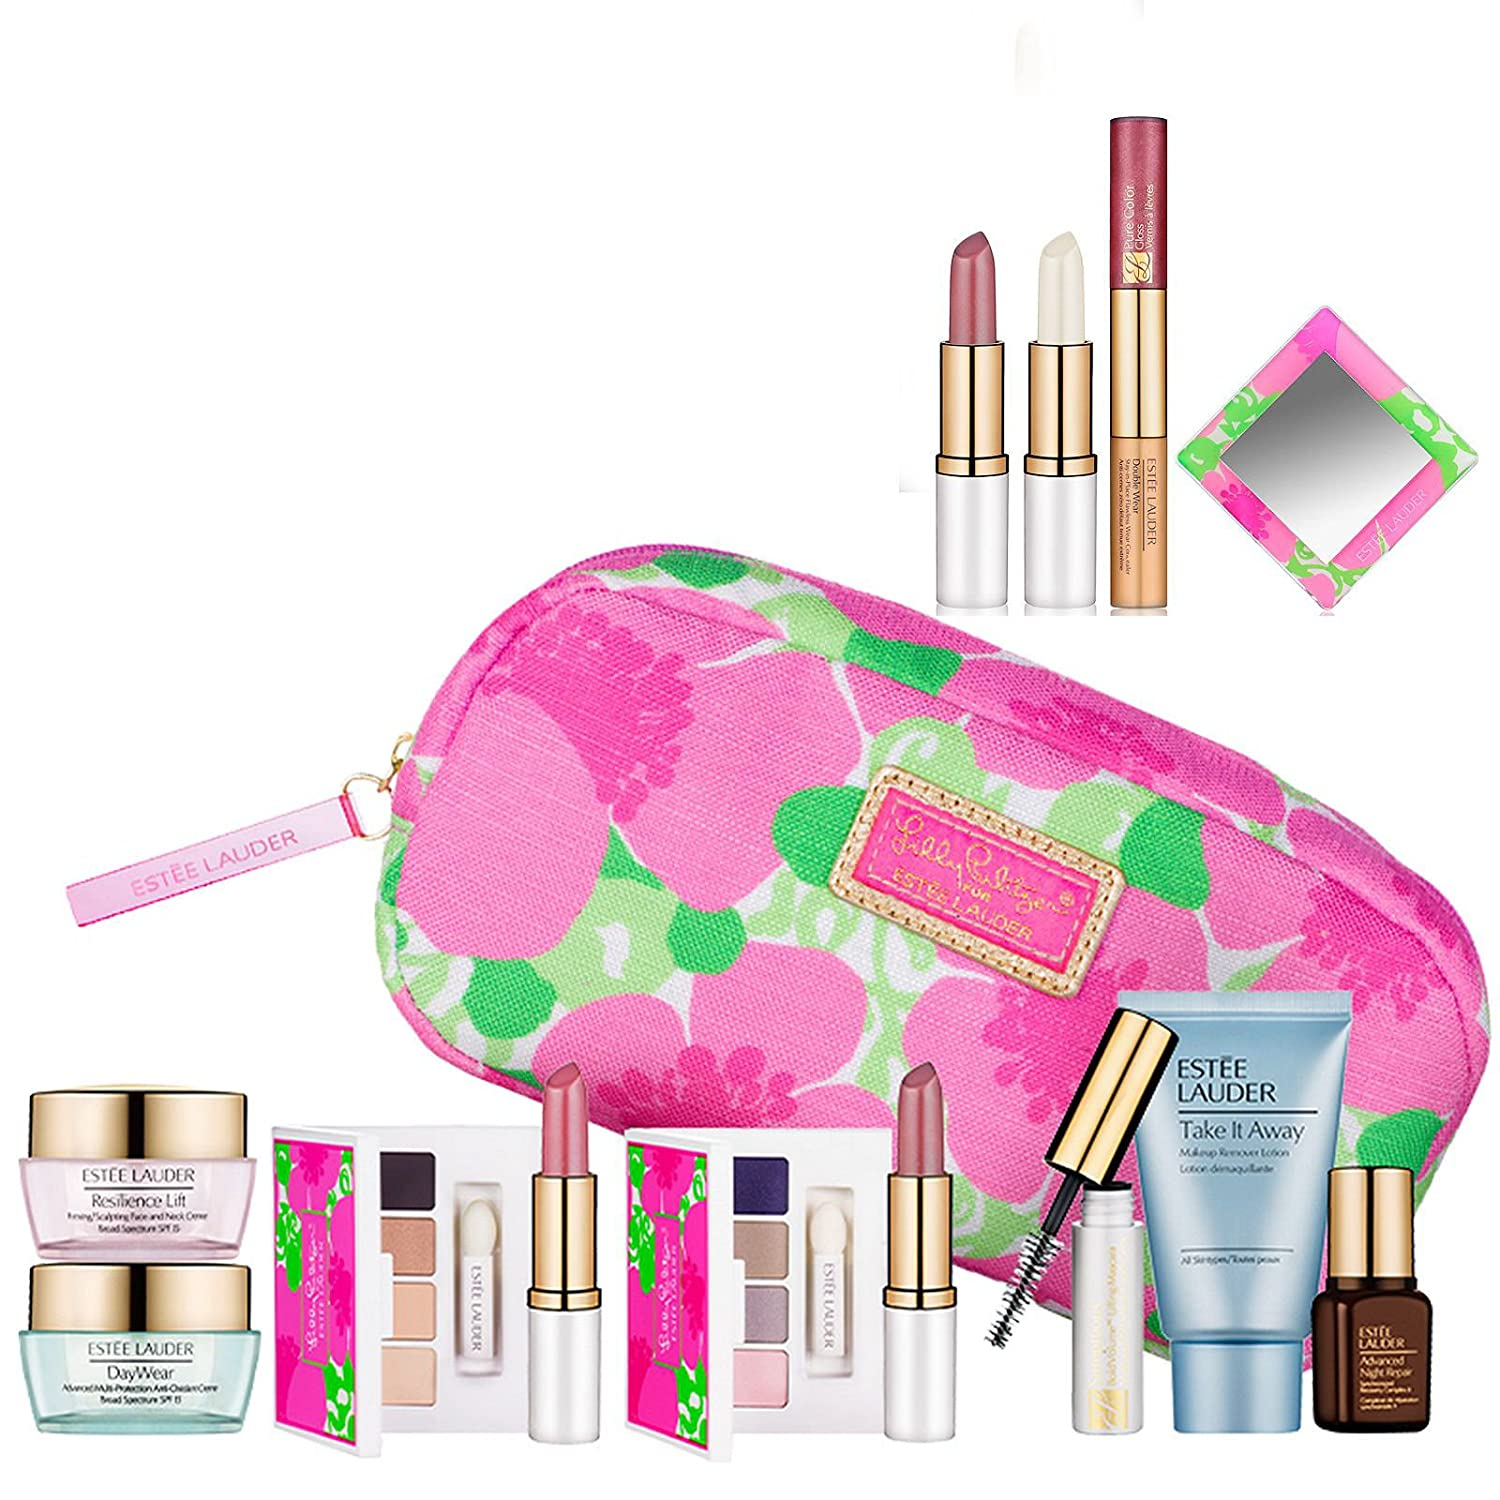 New-Estee-Lauder-Spring-10pc-Skincare-Makeup-Gift-Set-170-Value-with-Cosmetic-Bag-Macy-s-Exclusive